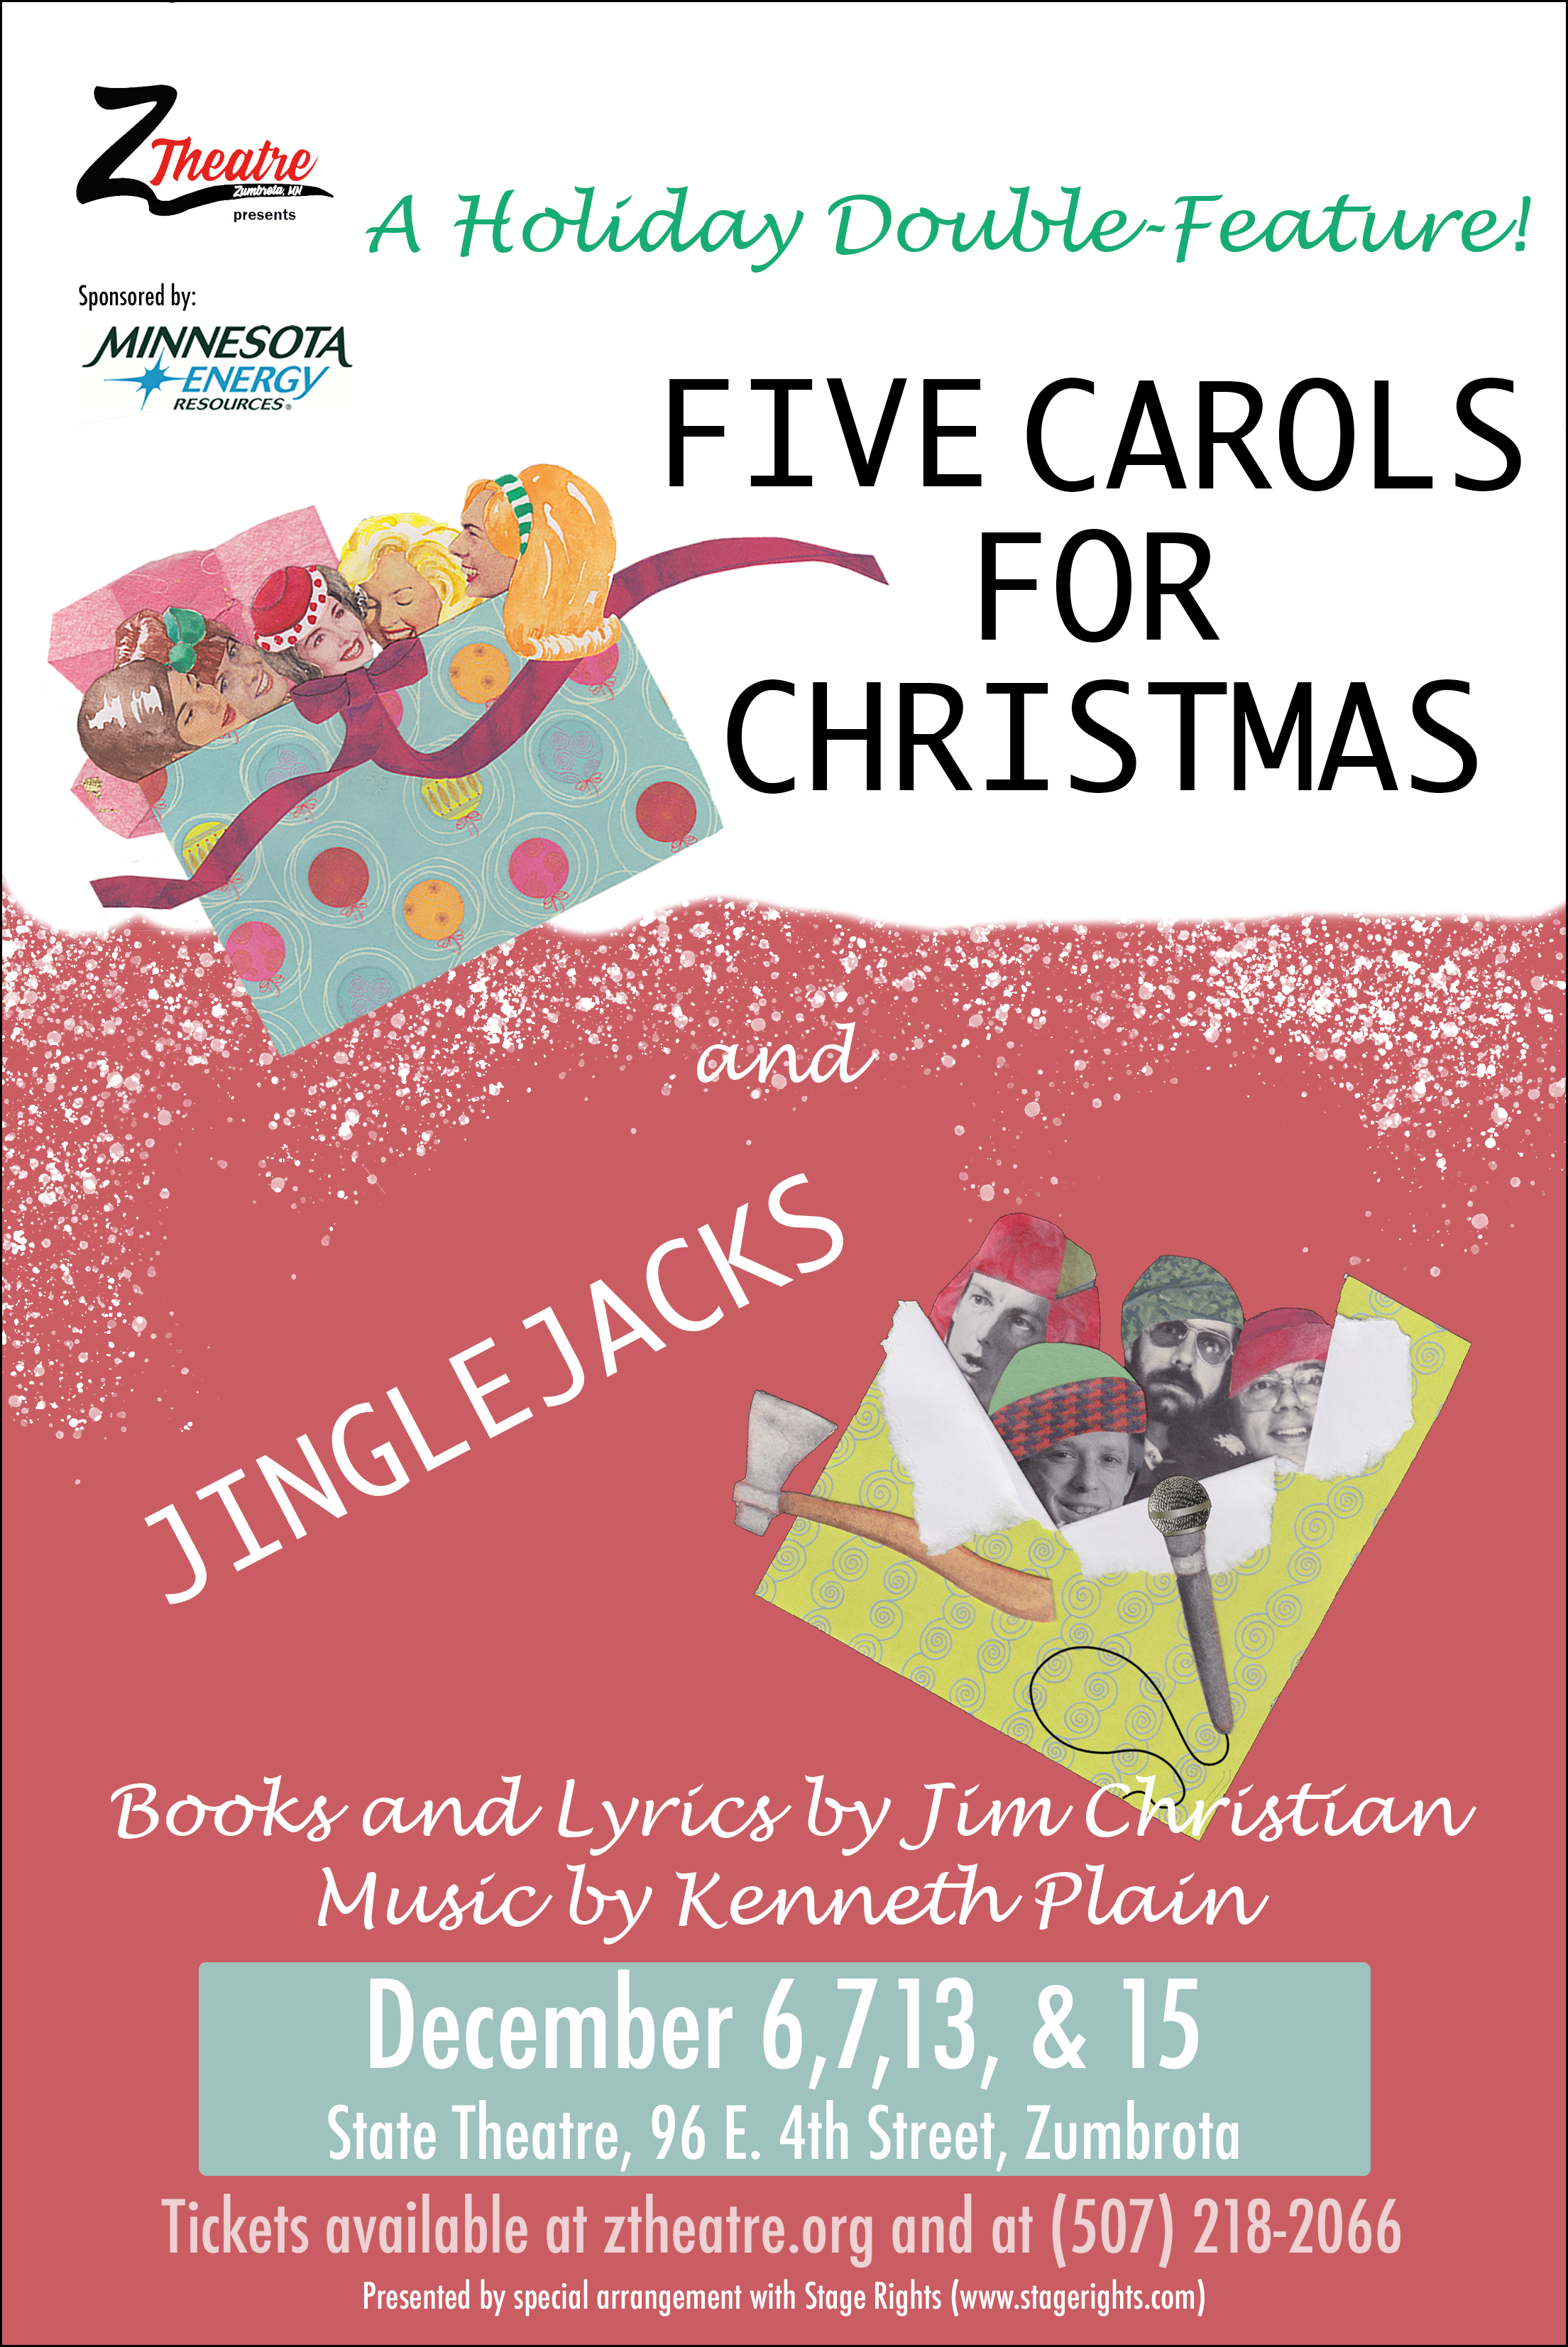 5 carols and jinglejacks zumbrota theatre